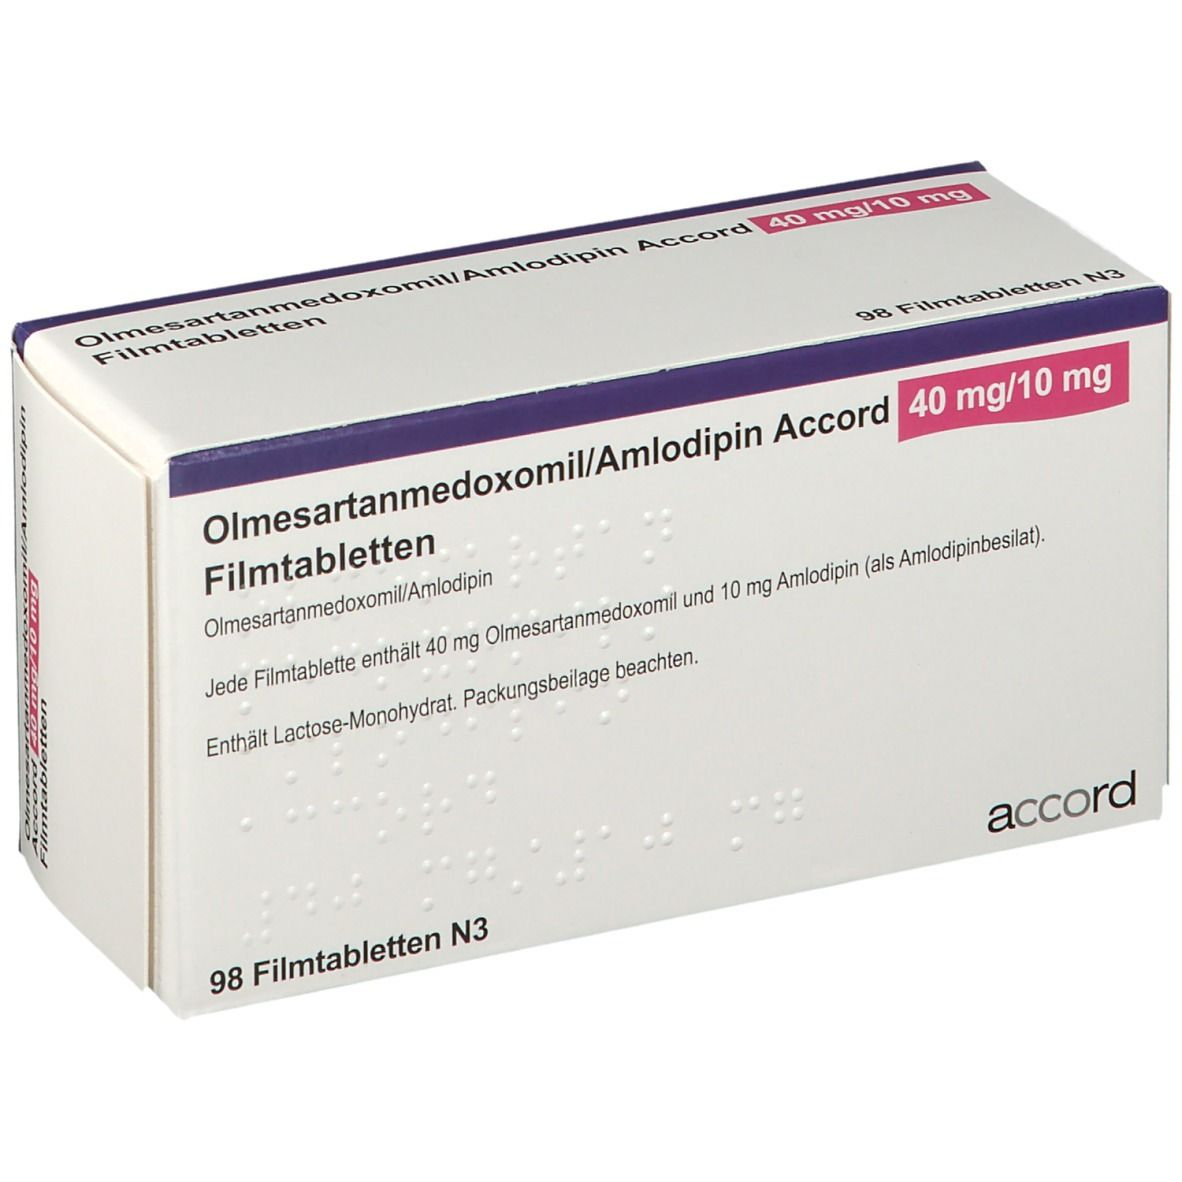 OLMESARTANMEDOXOMIL/Amlodipin Accord 40 mg/10 mg